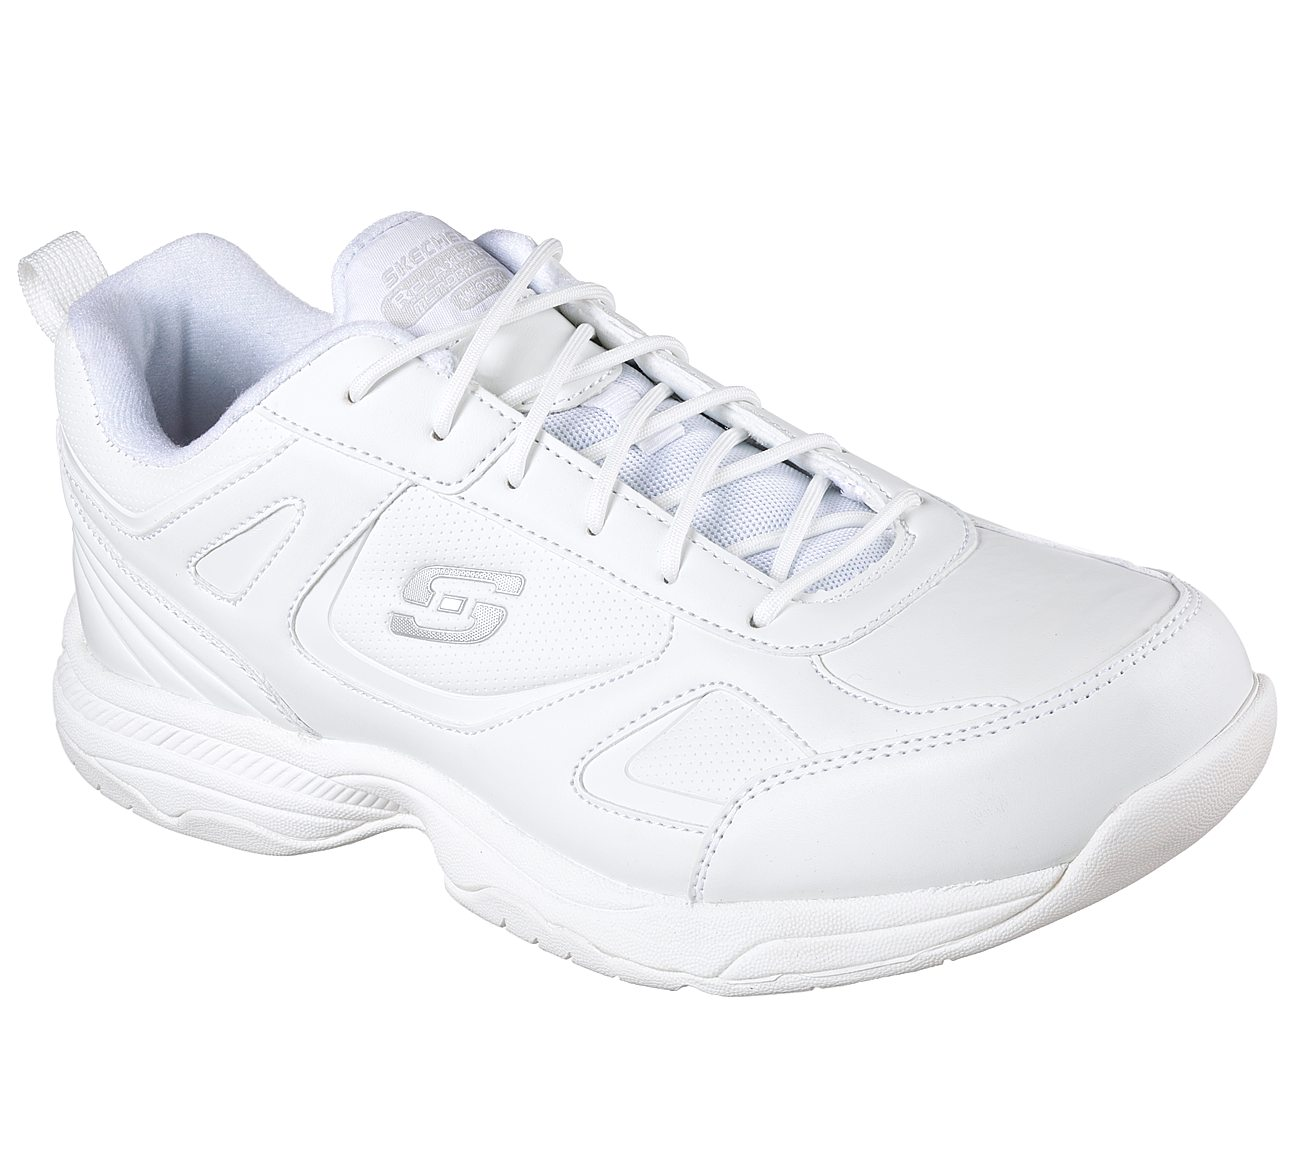 Skechers Work Men's Relaxed Fit Dighton